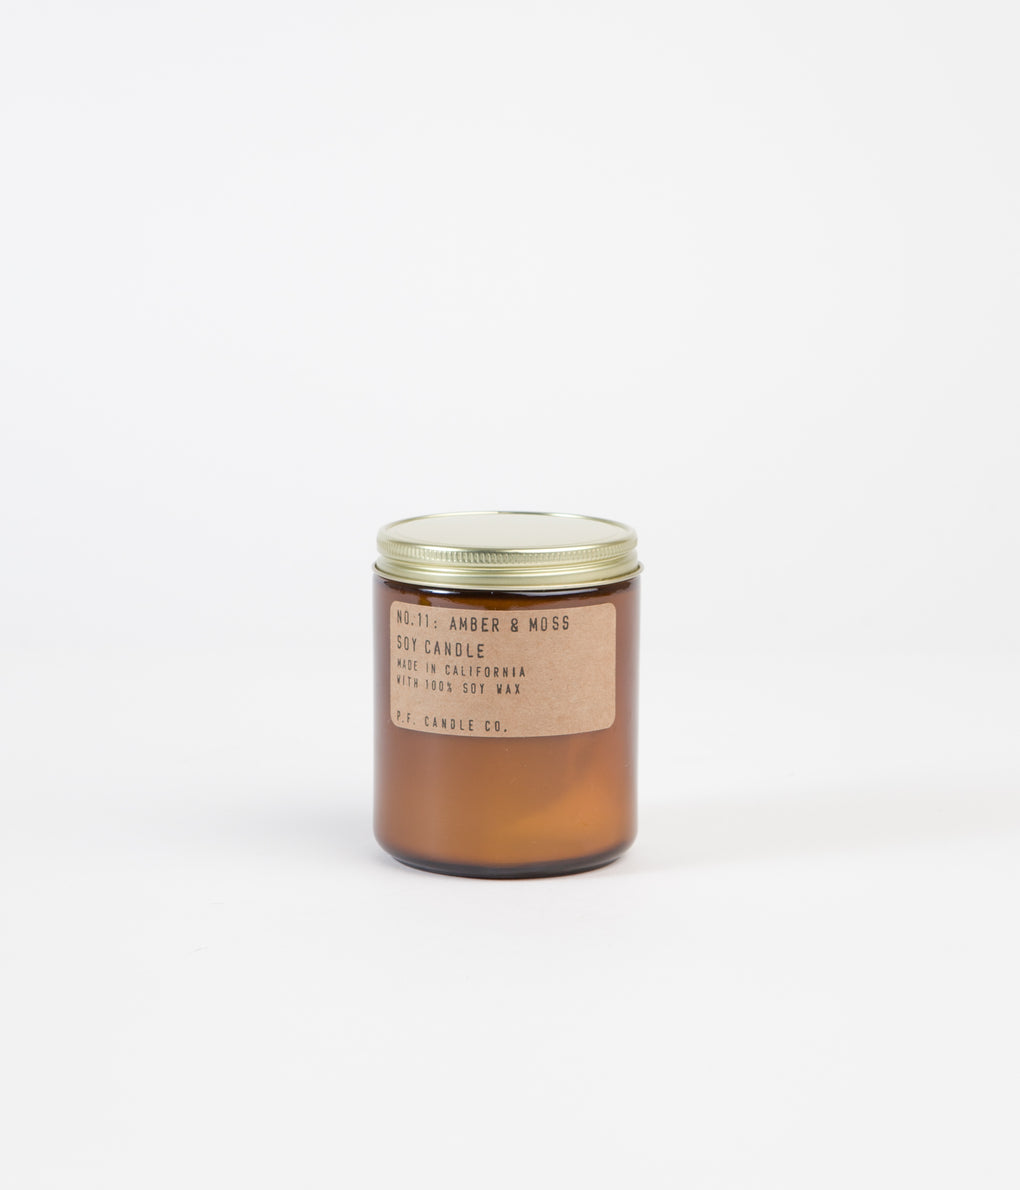 P.F. Candle Co. No. 11 Amber & Moss Soy Candle - 7.2oz